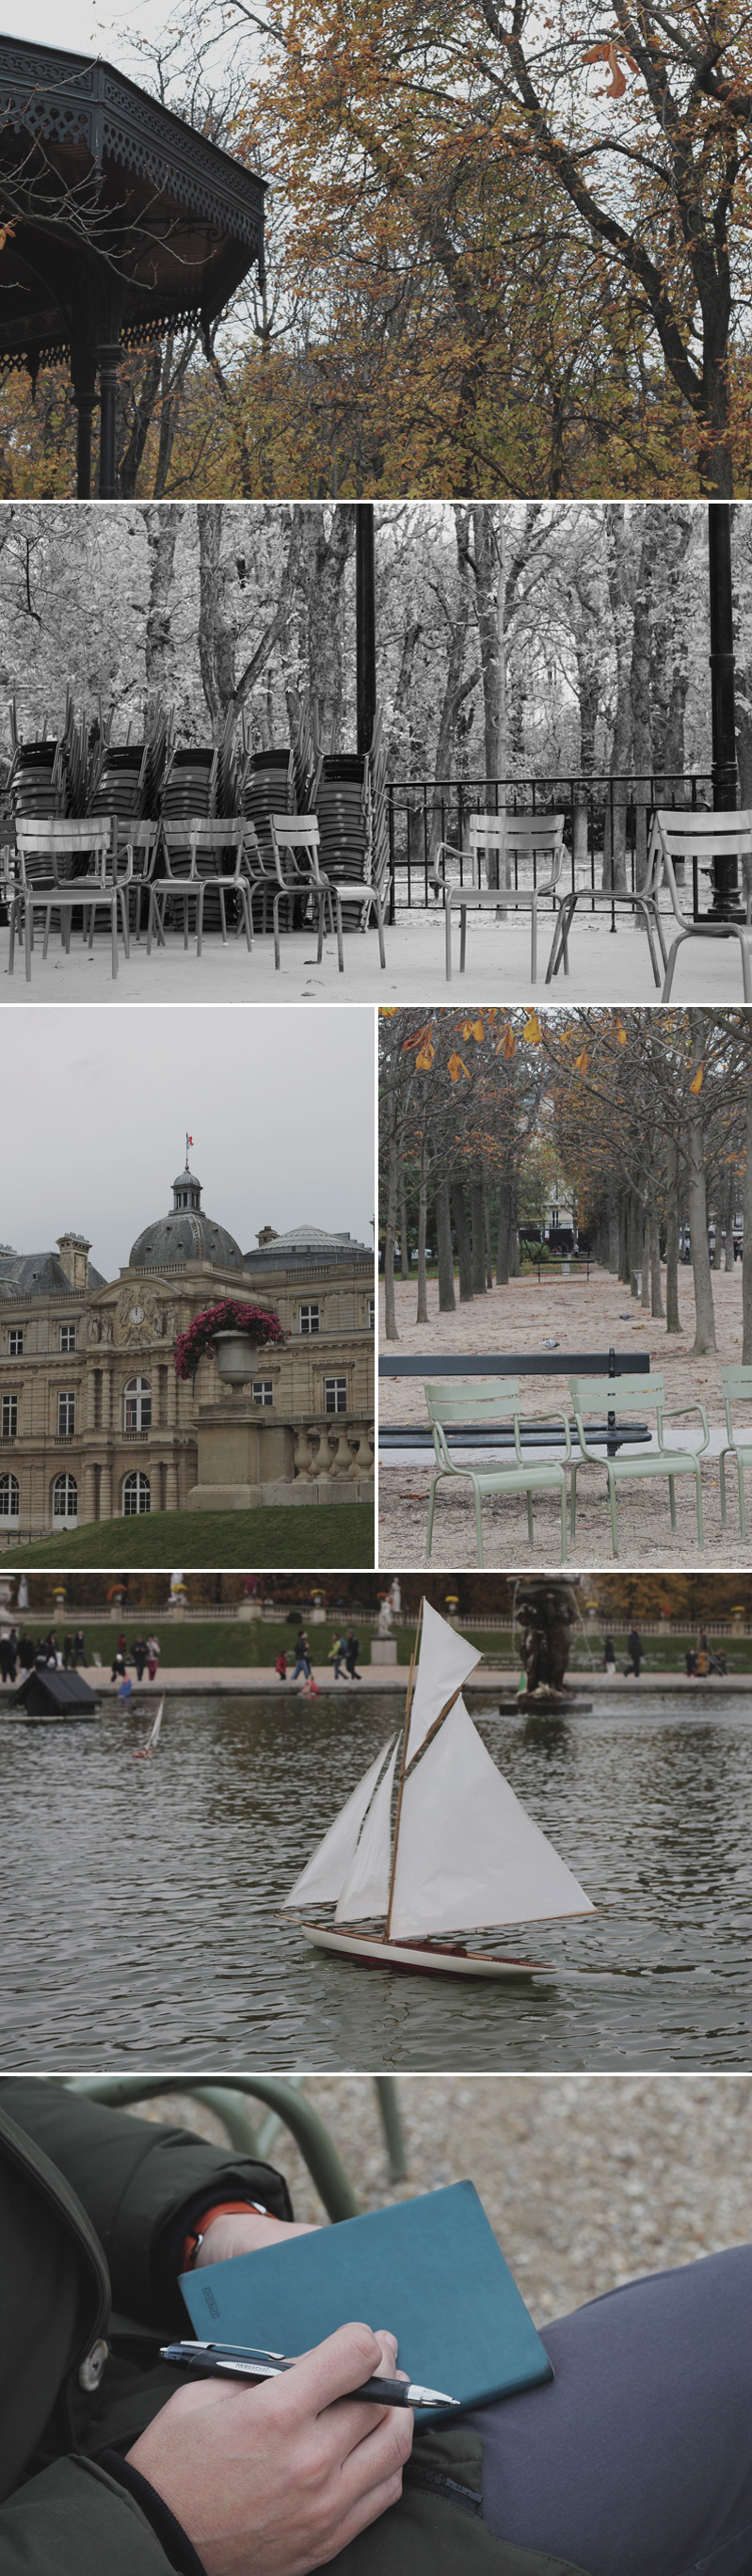 Coco Wedding Venues - Paris in the Autumn - Jardin du Luxembourg.